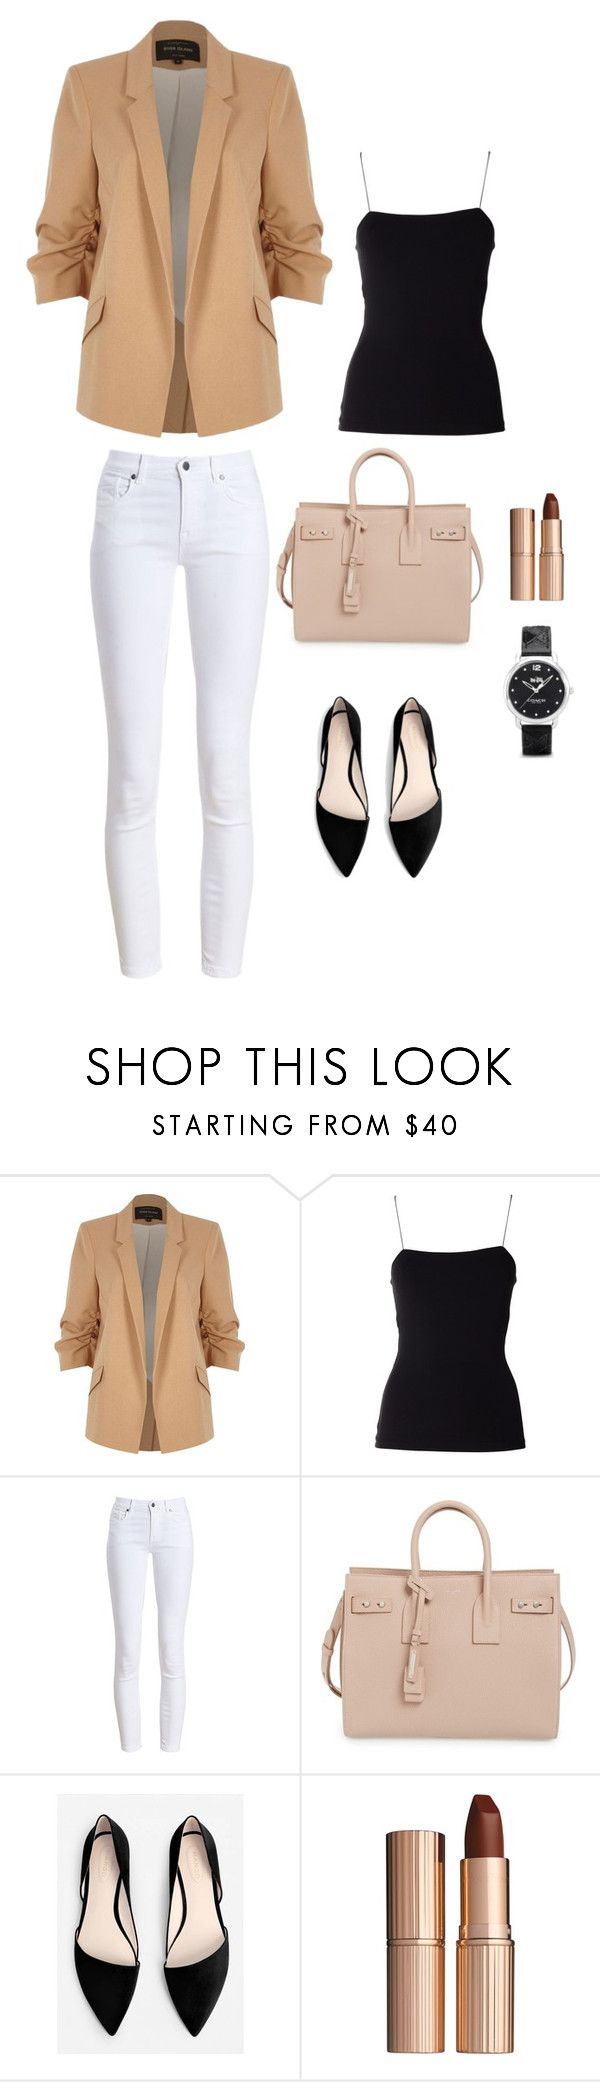 Back To Work Work by natasha-esprecielo on Polyvore featuring T By Alexander Wang, River Island, Barbour, MANGO, Yves Saint Laurent, Coach and Charlotte Tilbury